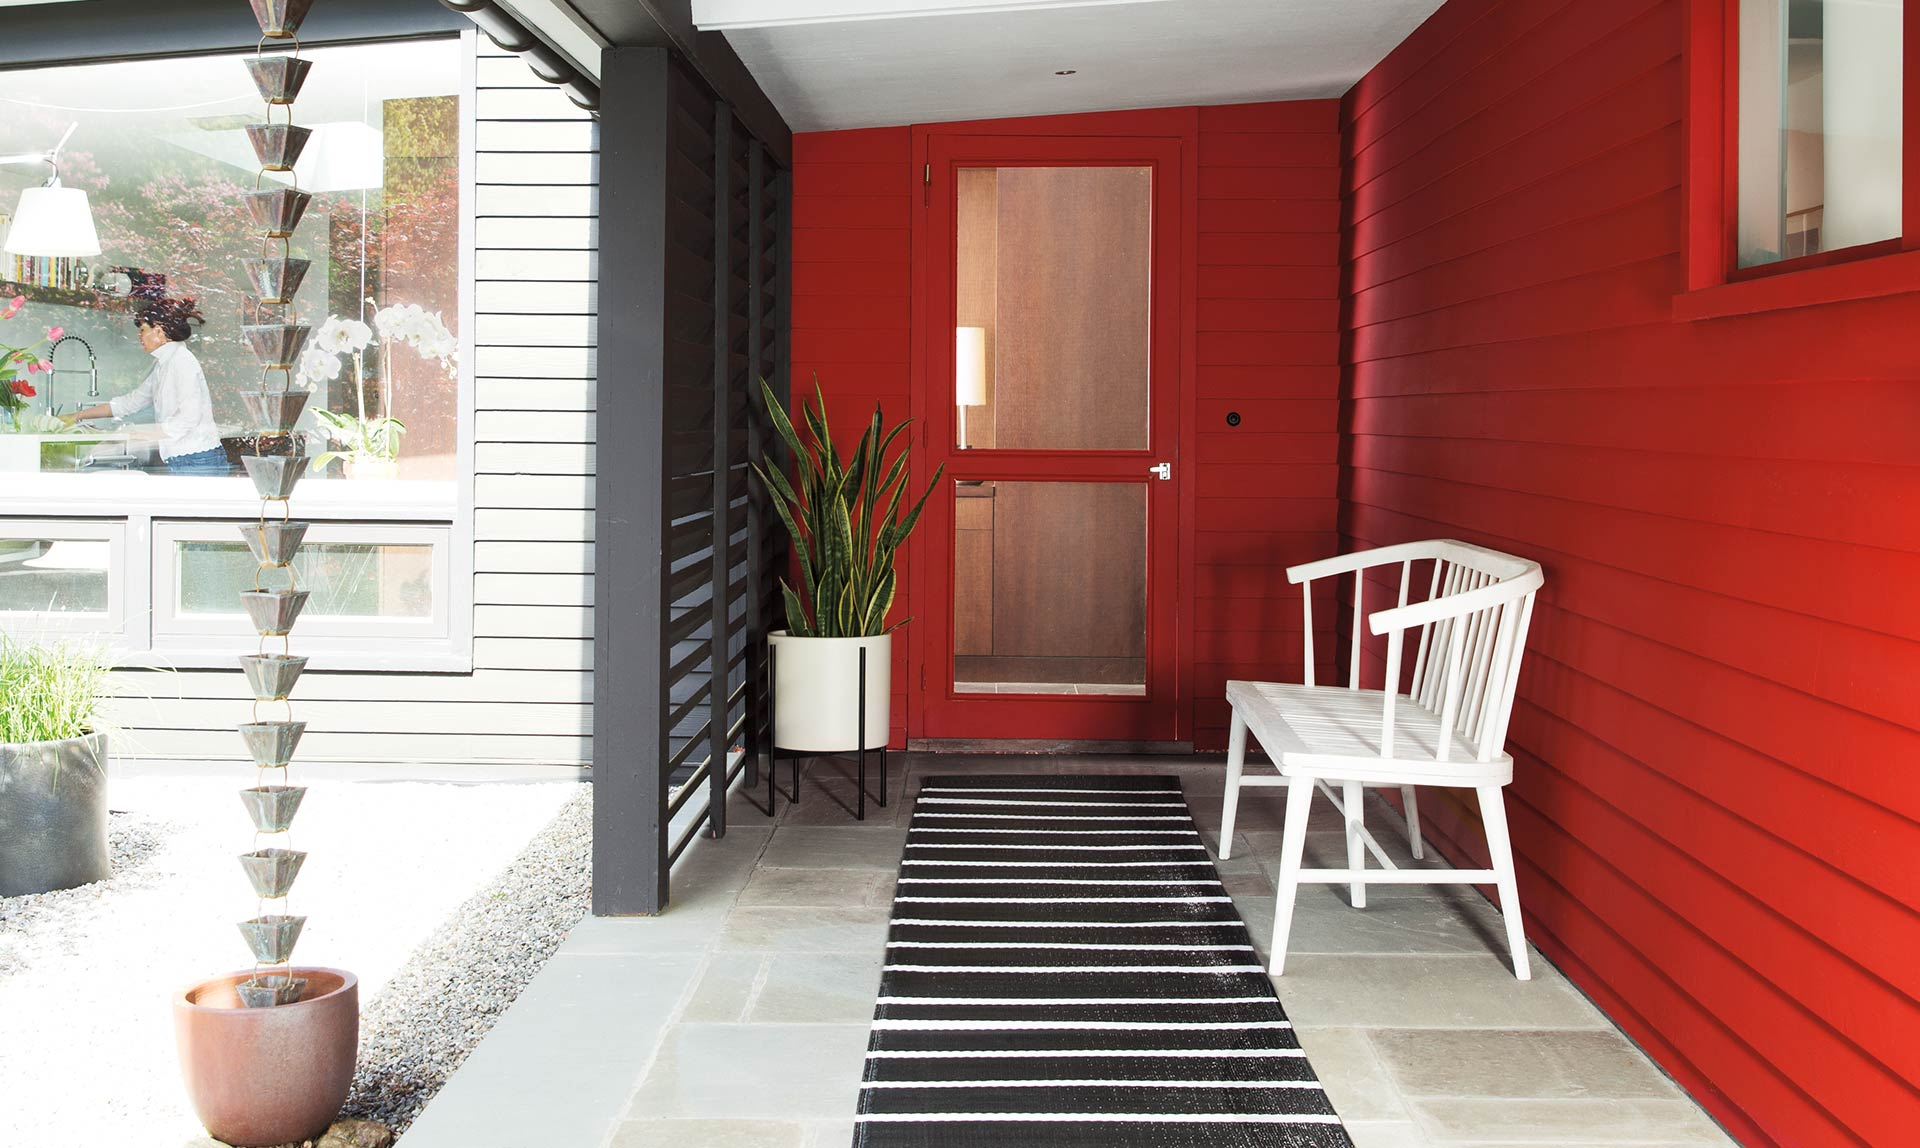 A semi-enclosed entryway with white wood bench against red shingled wall.